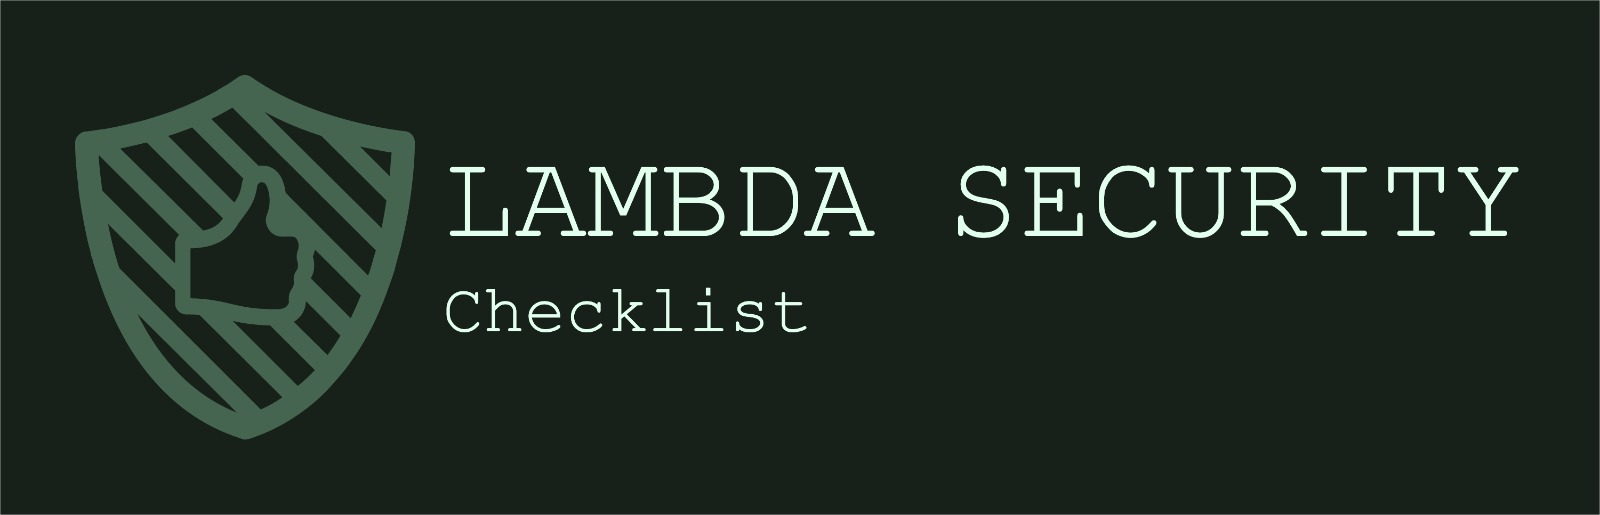 AWS Lambda Security Checklist — Don't become SecureLess